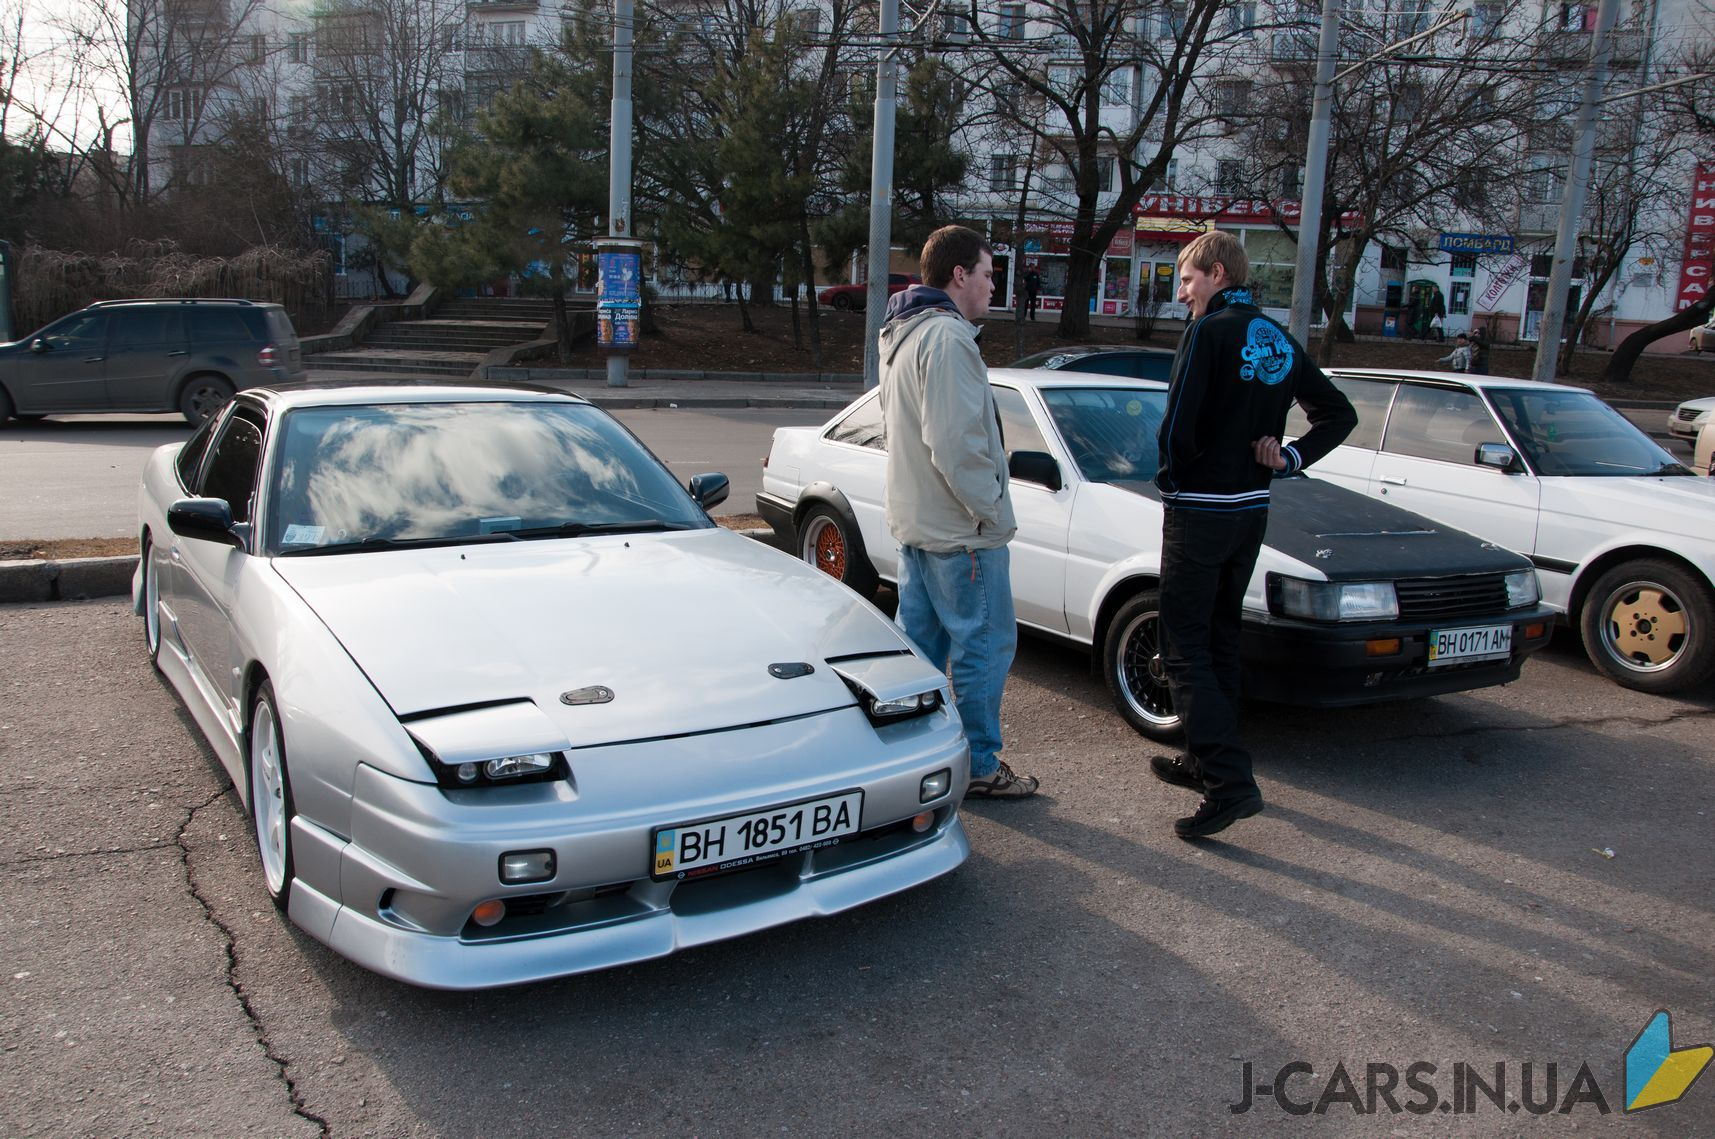 j-cars.in.ua 200sx